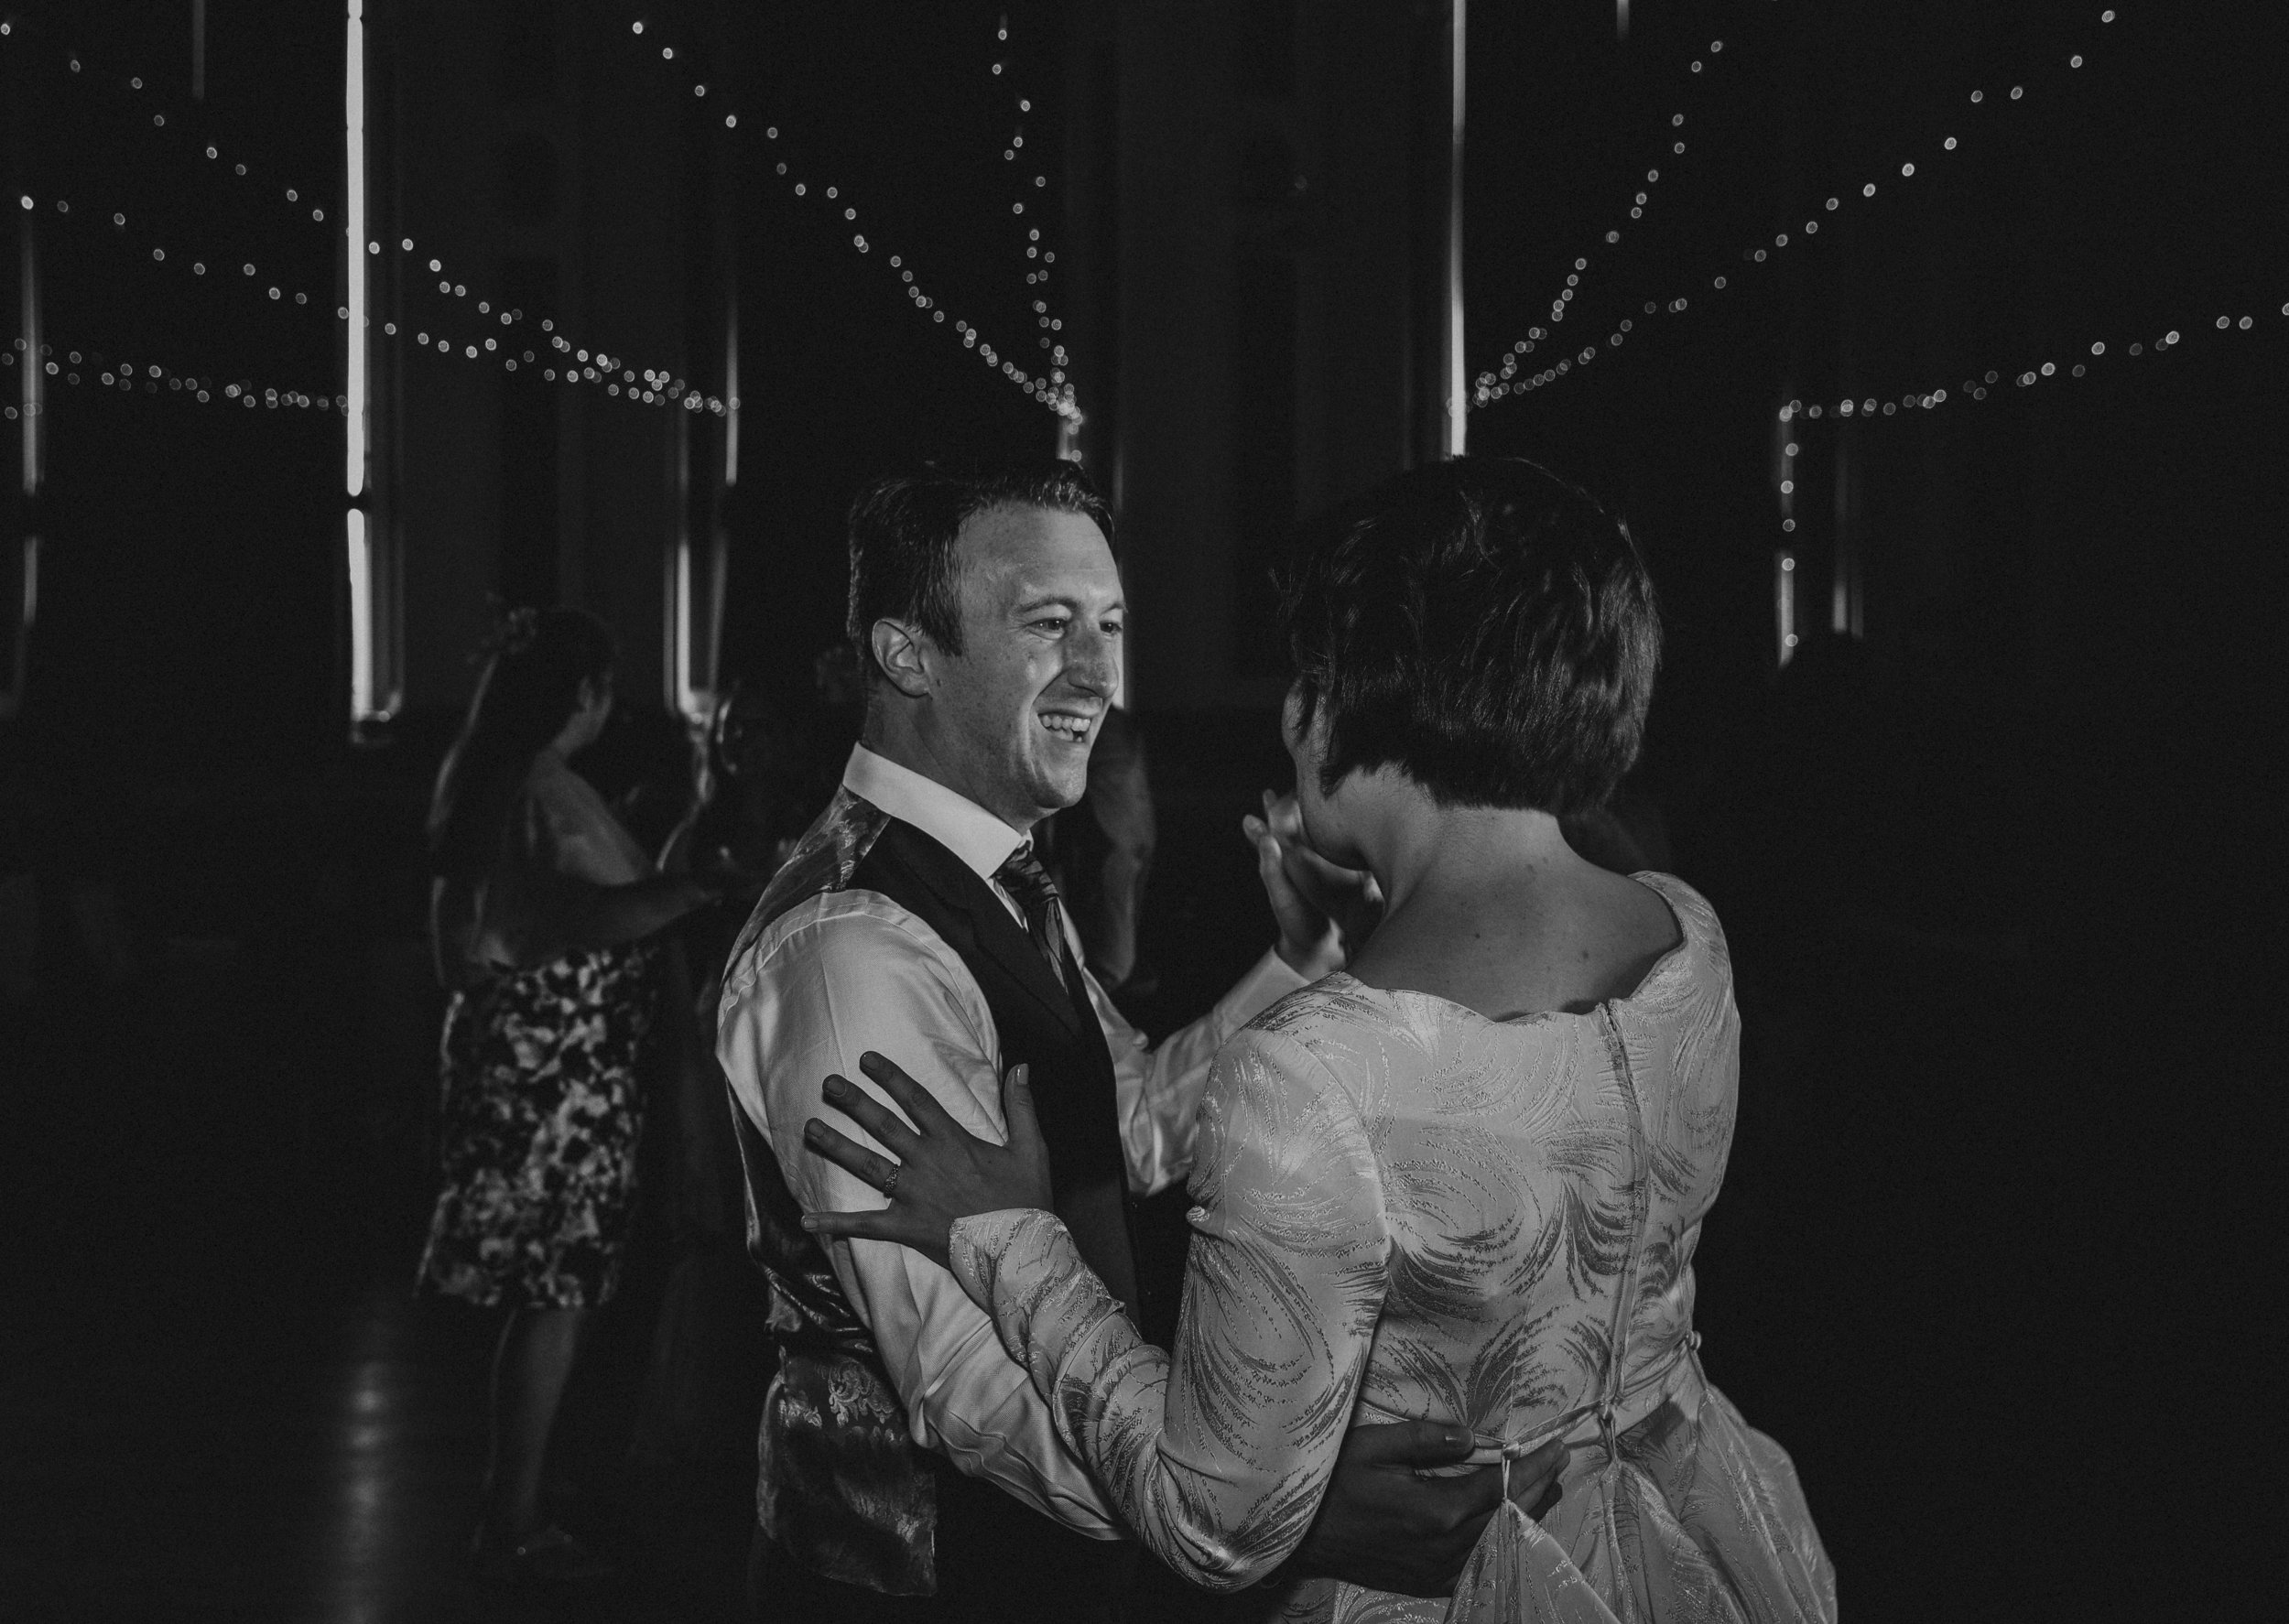 VICTORIA_HALL_SALTAIRE_VINTAGE_YORKSHIRE_WEDDING_PJ_PHILLIPS_PHOTOGRAPHY_123.jpg